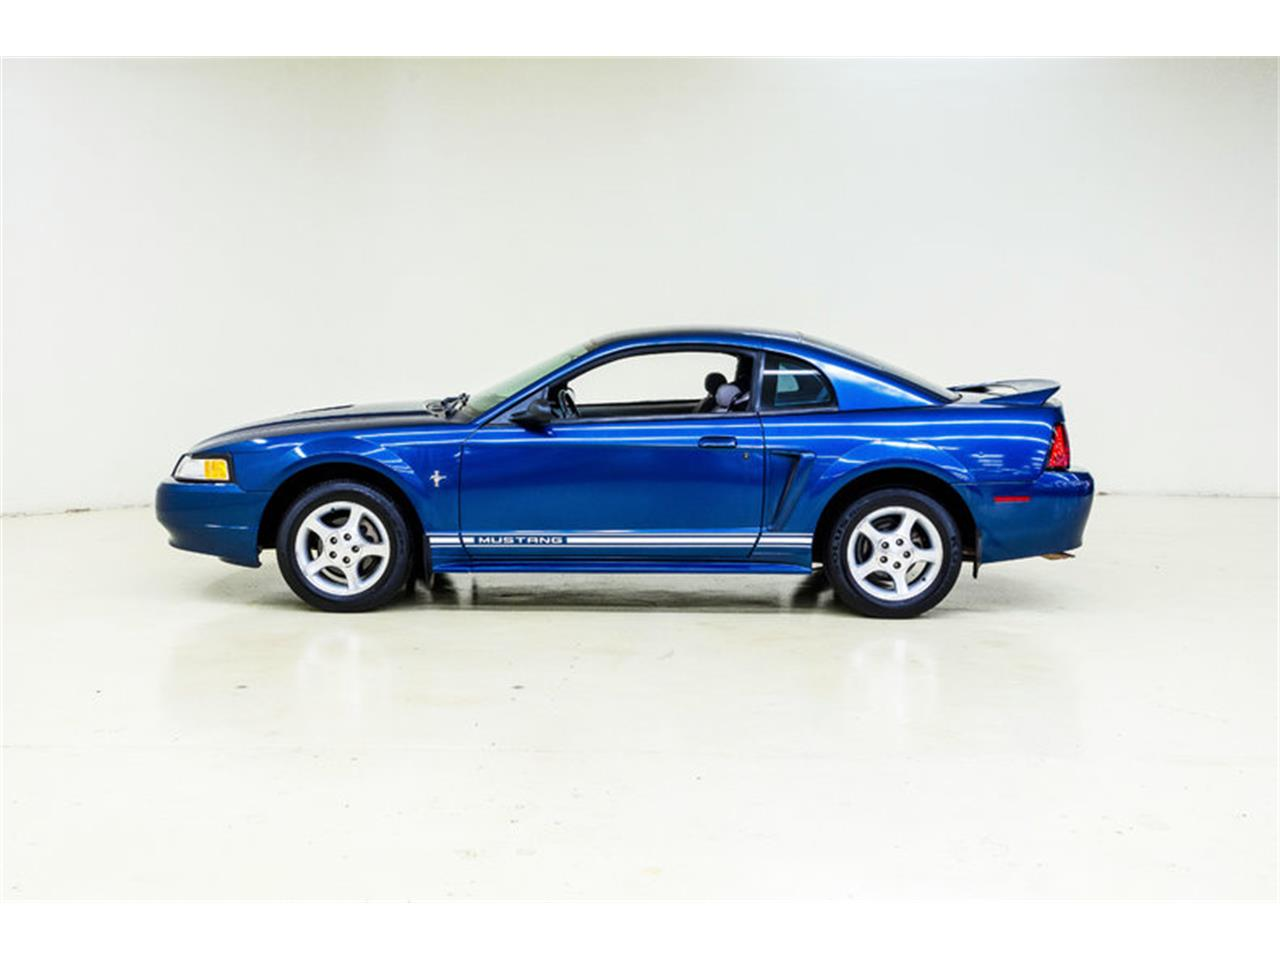 Large Picture of 2000 Mustang located in Concord North Carolina - $7,995.00 Offered by Autobarn Classic Cars - LB01